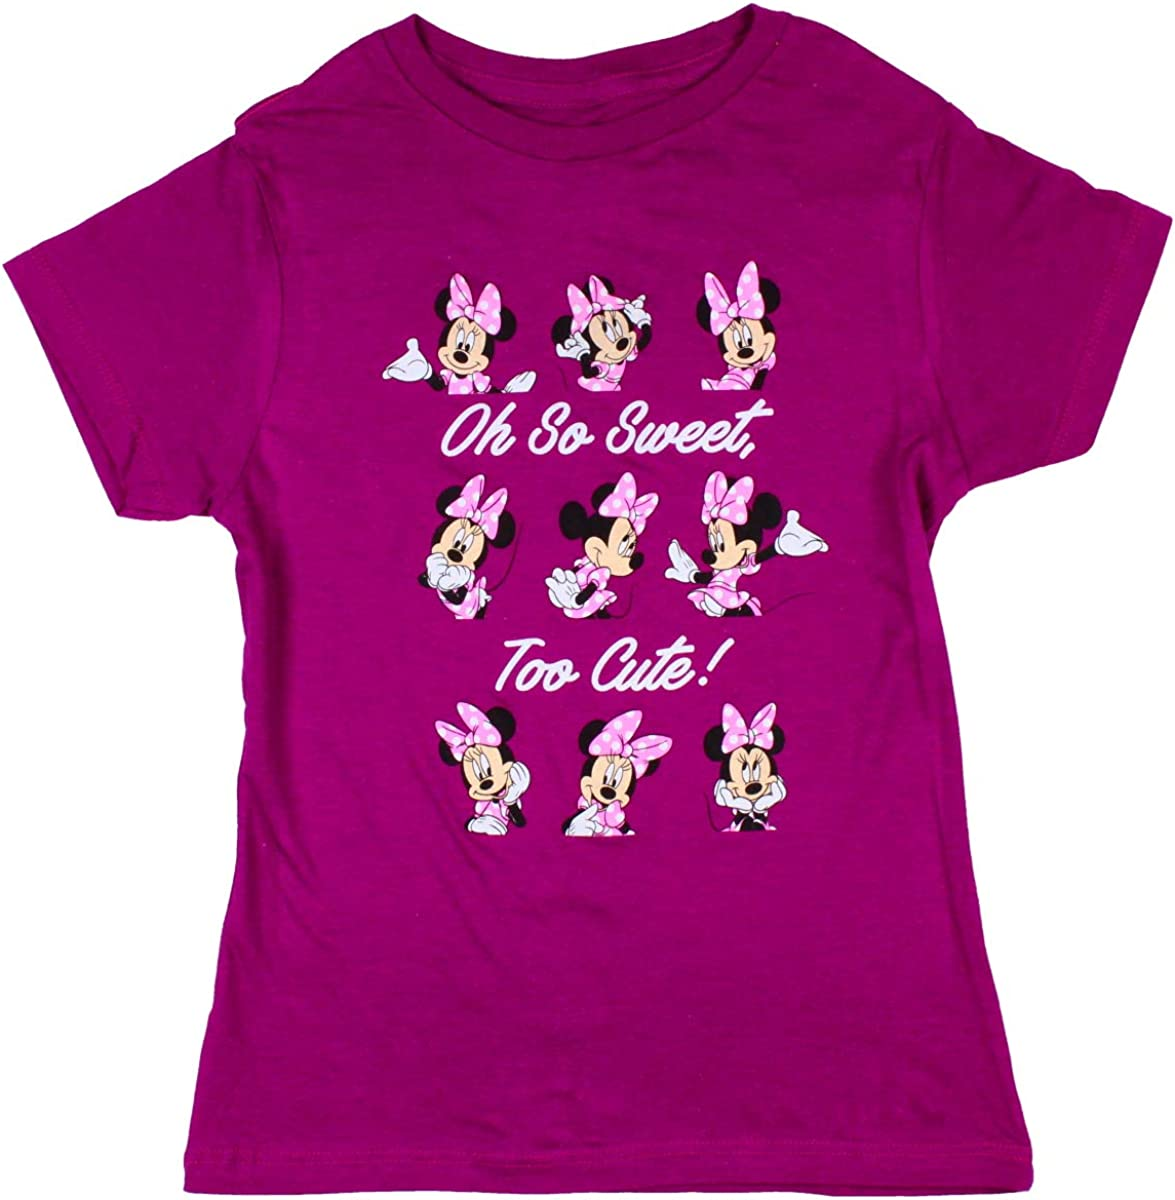 Disney Minnie Mouse Girls Oh So Sweet, Too Cute! T-Shirt